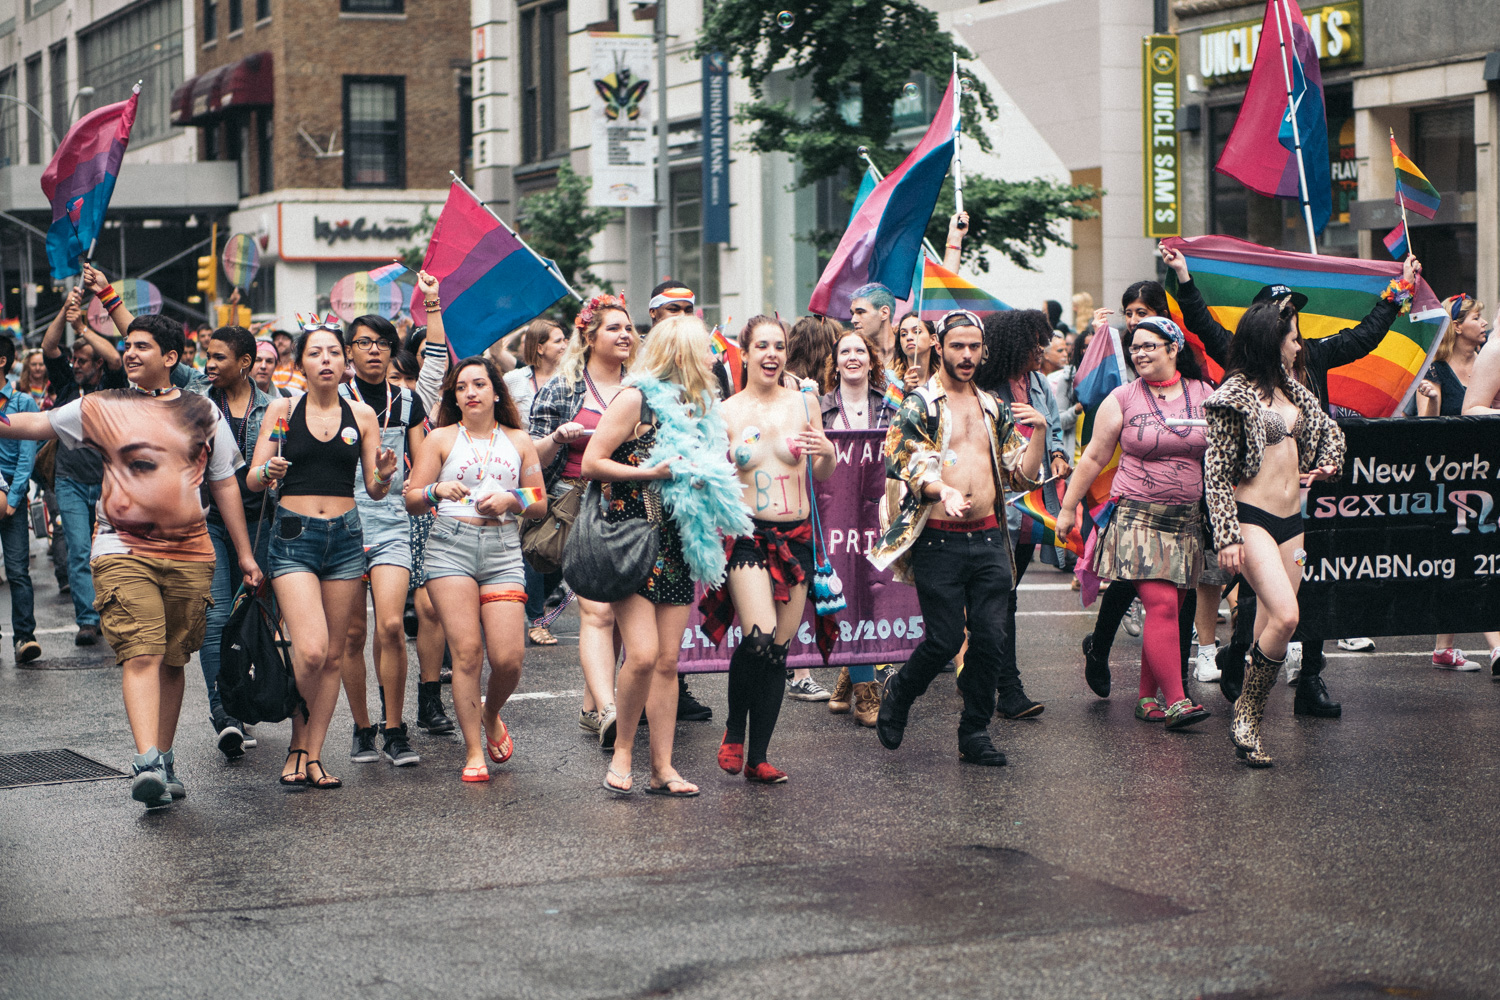 New york gay pride started